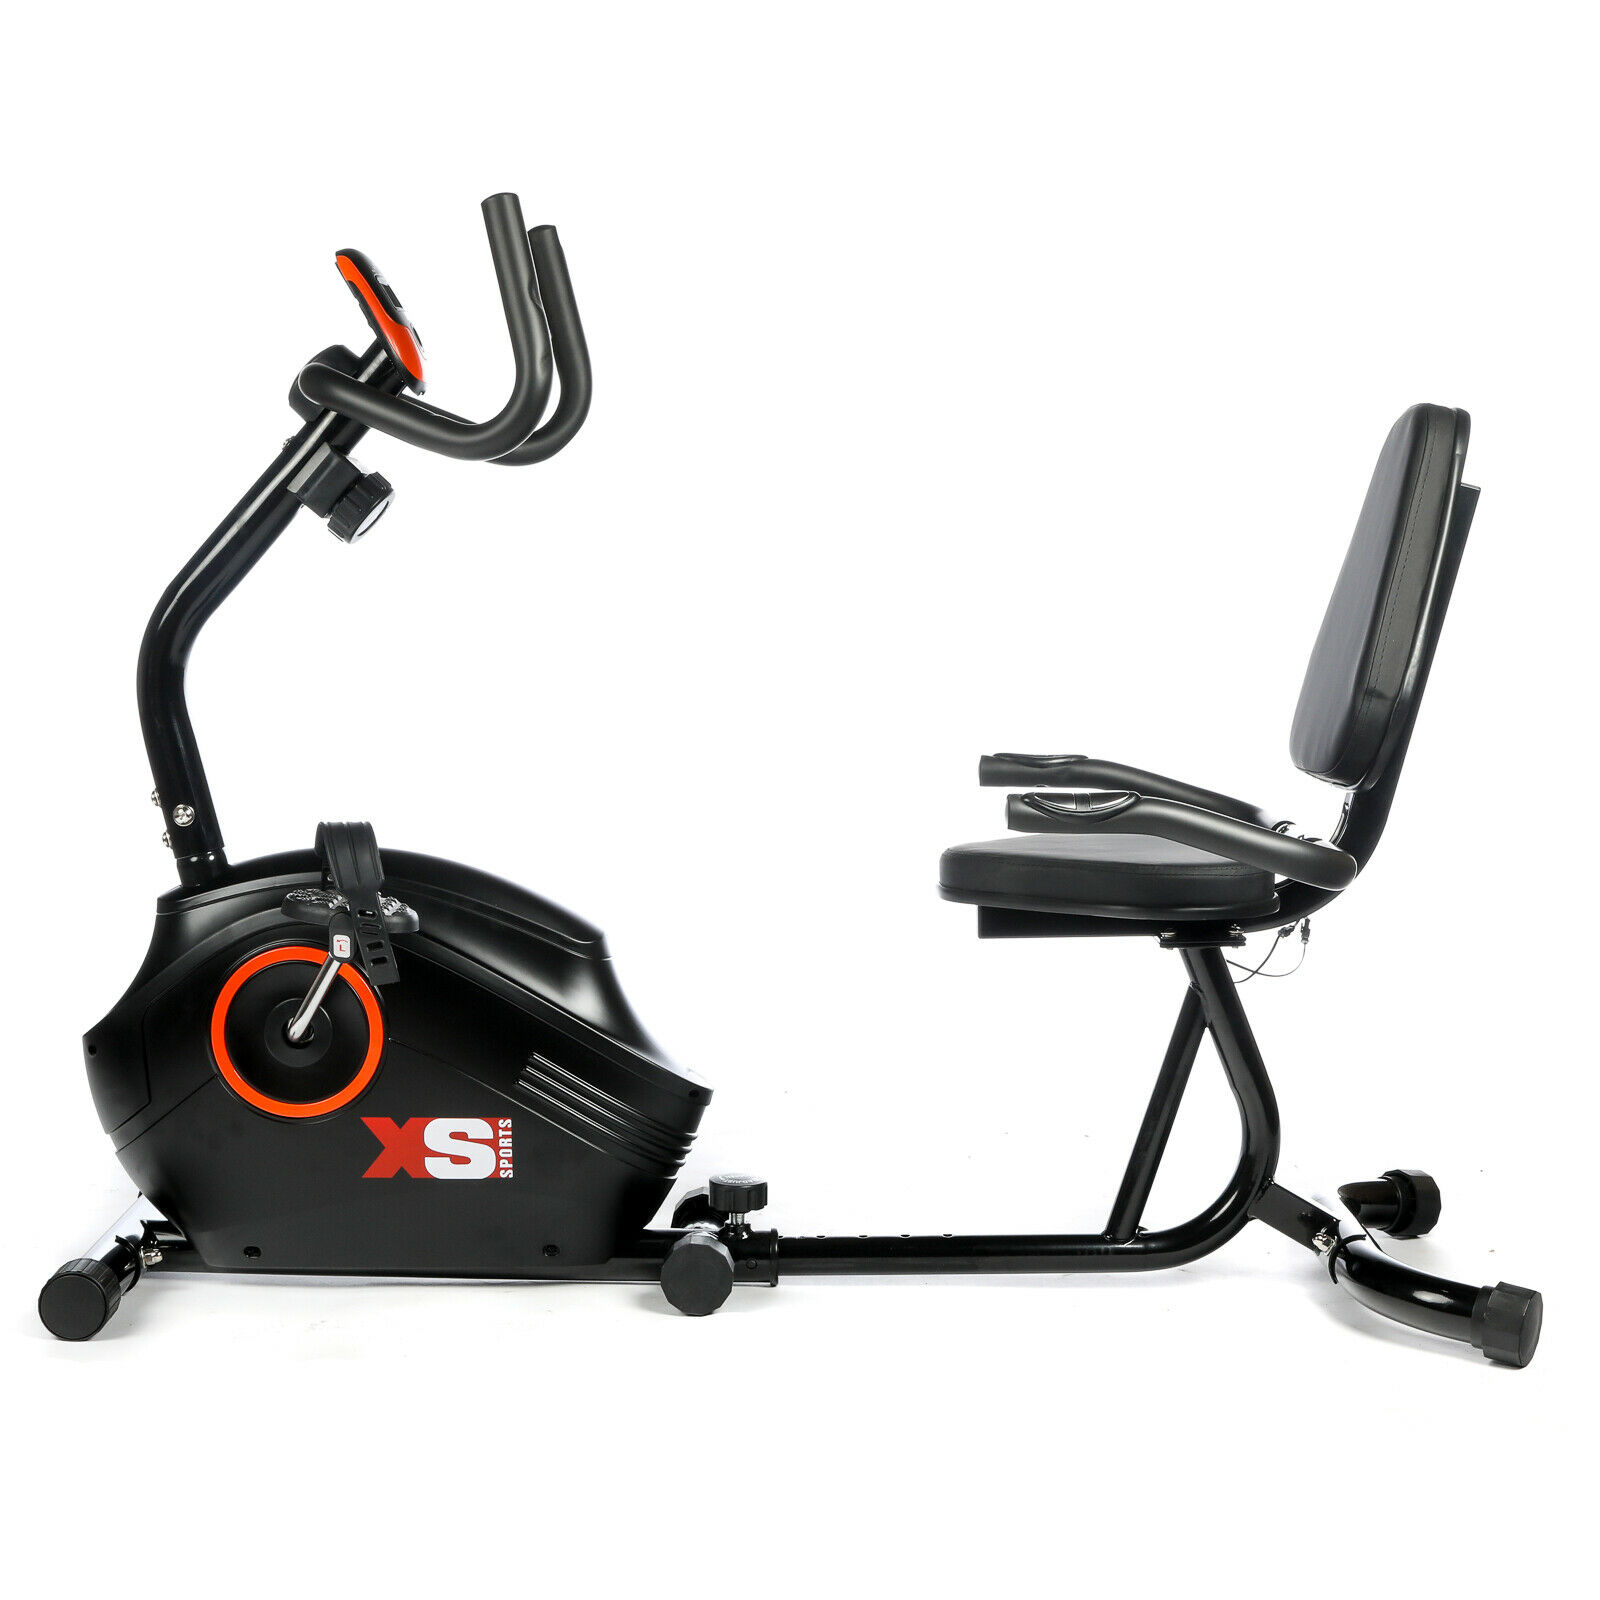 Details about XS Sports Recumbent Magnetic Exercise Bike-Seated Support  Rehabilitation Cycle